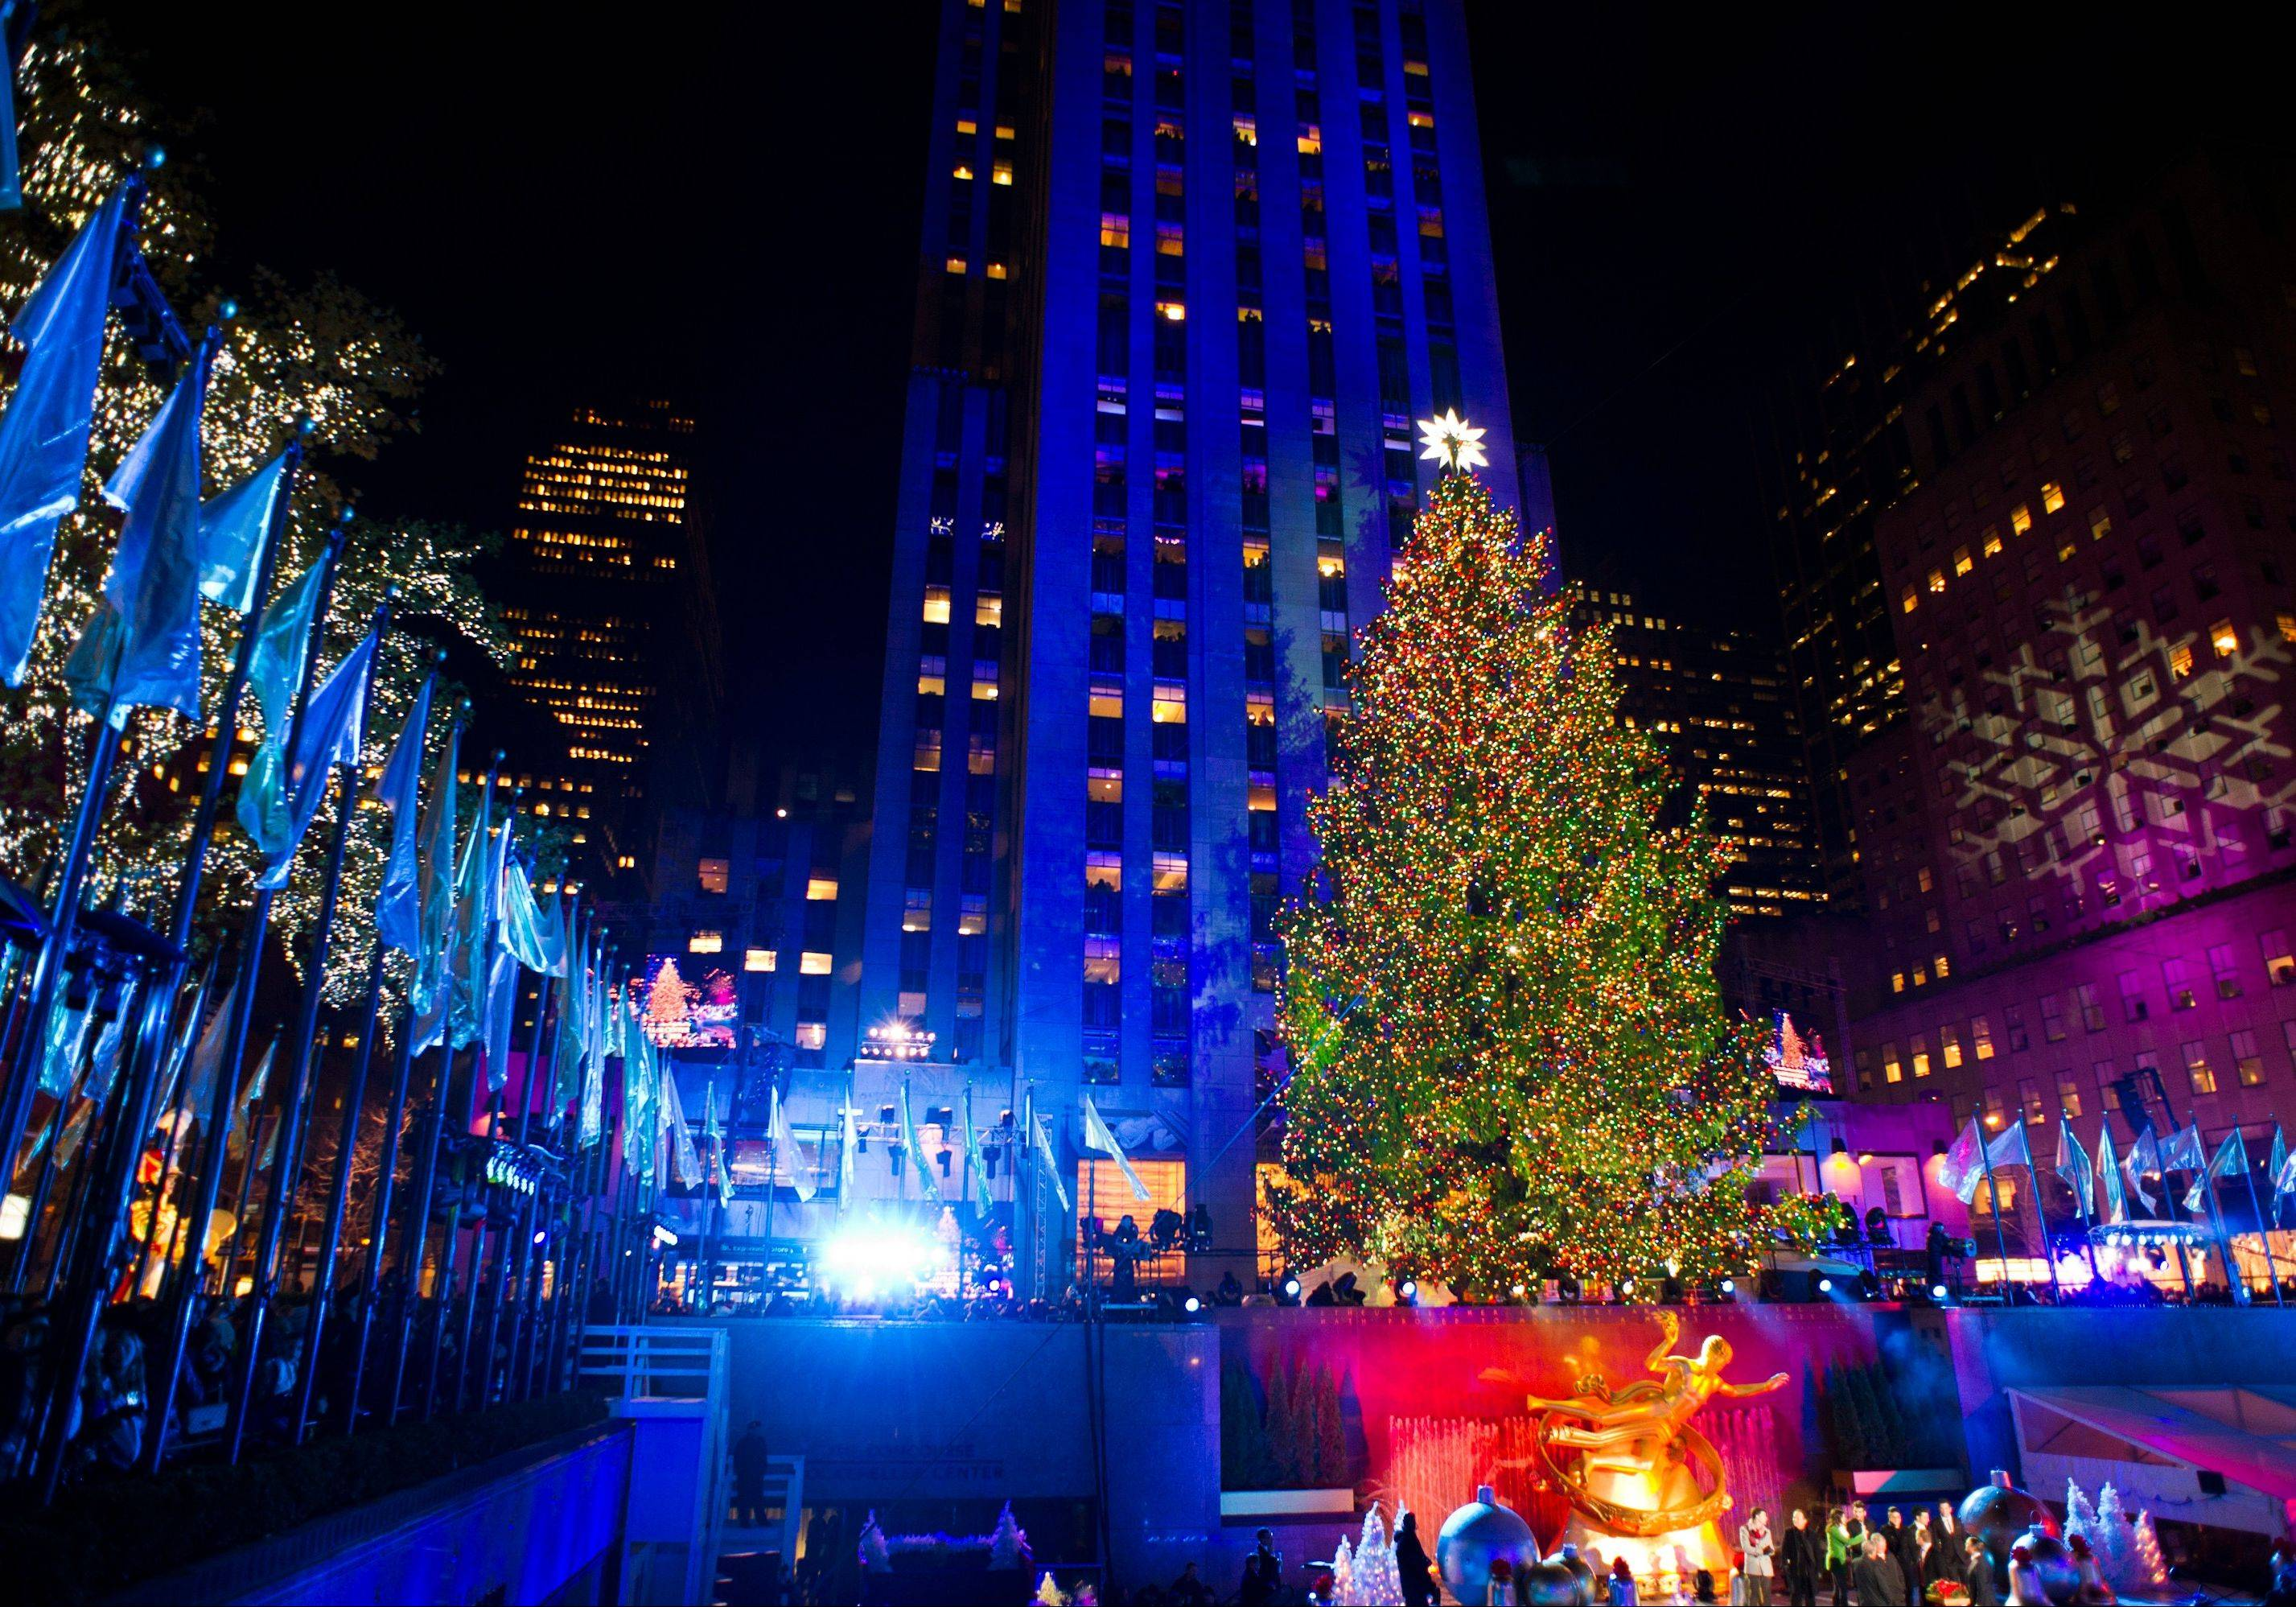 The 80-foot-tall Rockefeller Center Christmas tree uses 45,000 lights. Visitors to Rockefeller Center can also watch ice skaters, take in the Radio City Christmas Spectacular or visit St. Patrick's Cathedral on Fifth Avenue.